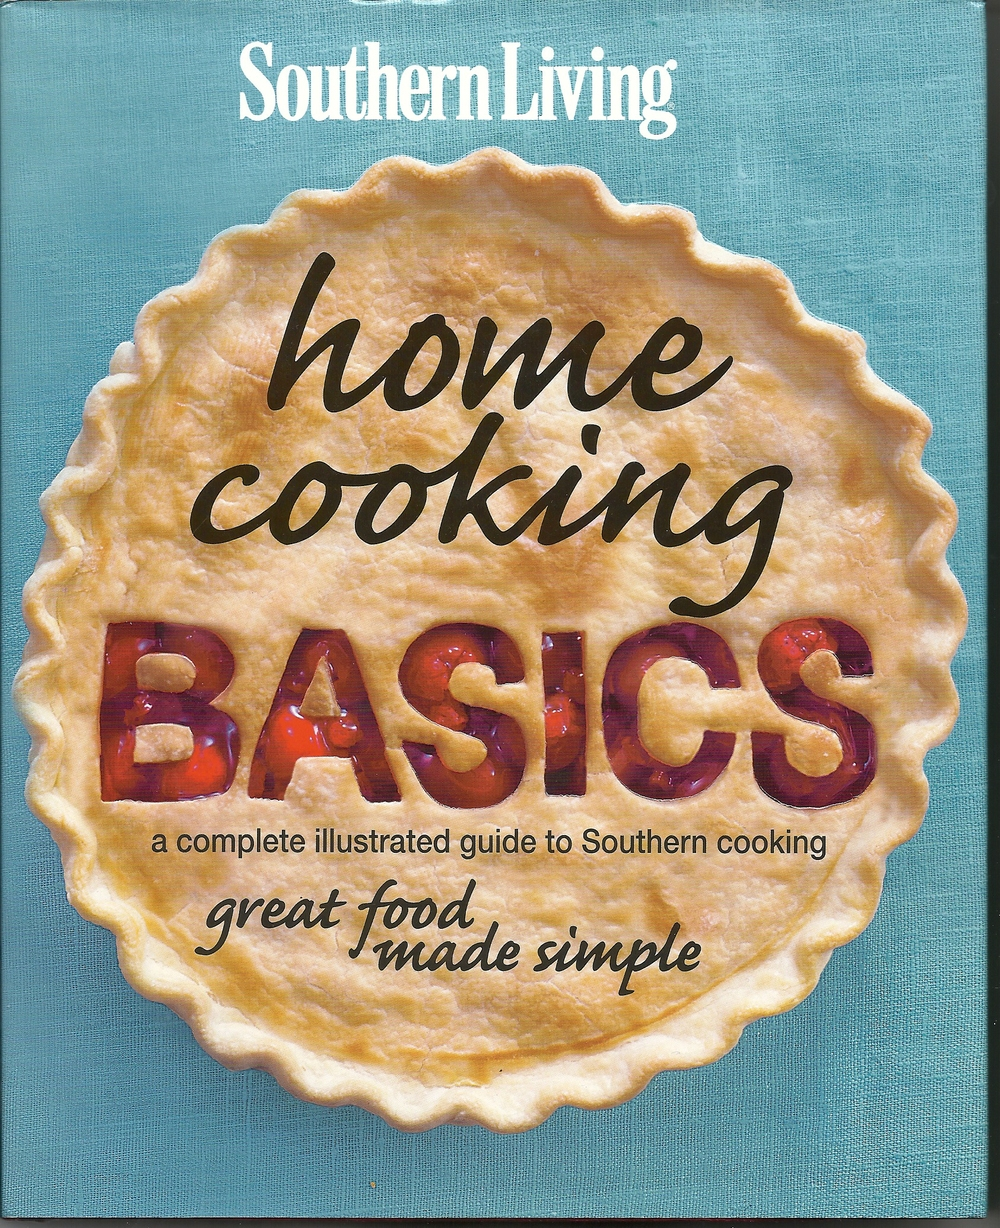 Southern_Living_Basics_Cookbook cover.jpg